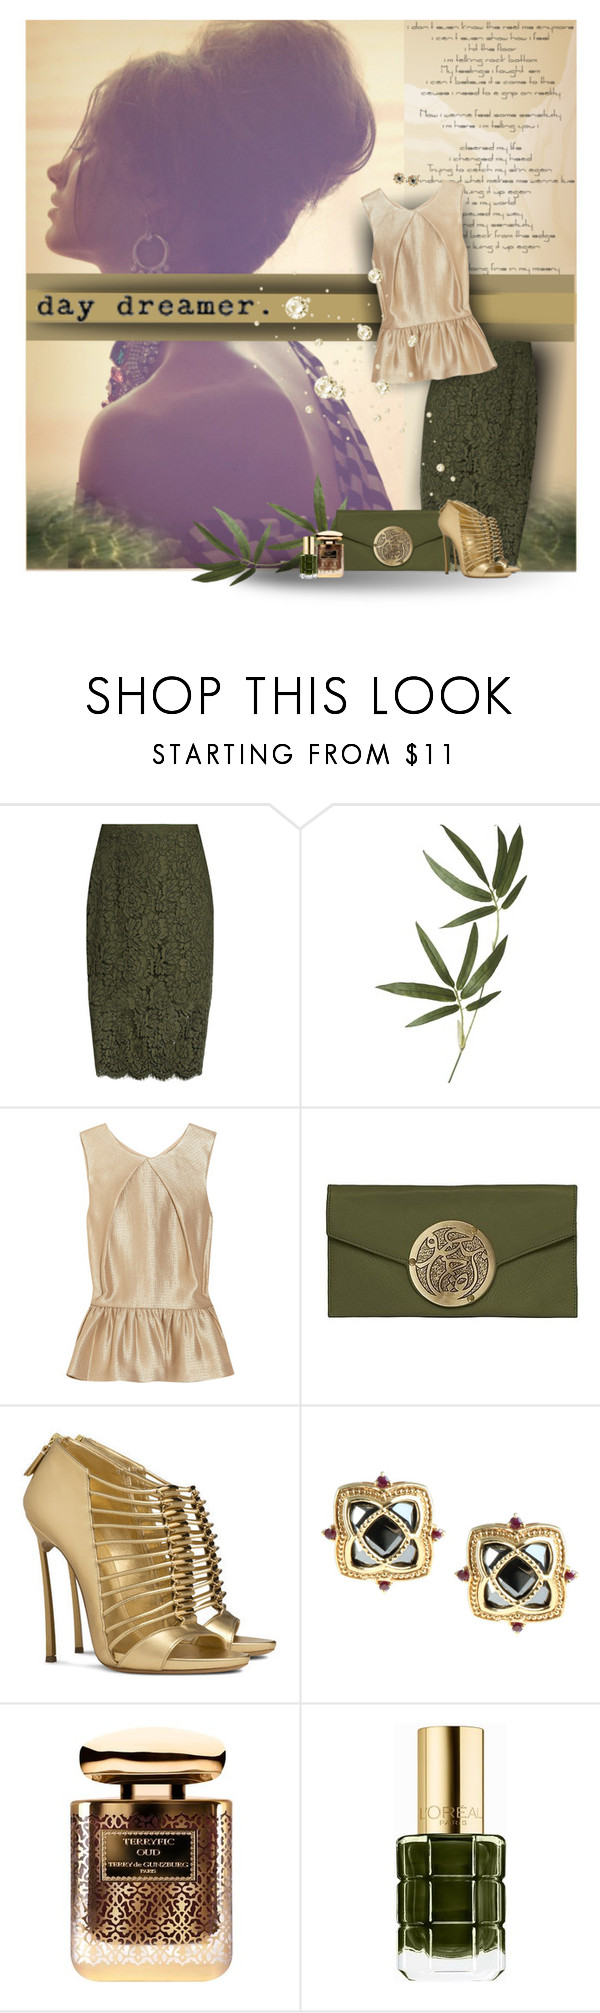 """Day dreamer"" by anna-survillo ❤ liked on Polyvore featuring Diane Von Furstenberg, Crate and Barrel, Mulberry, Dareen Hakim, Casadei, Dallas Prince, By Terry and L'Oréal Paris"